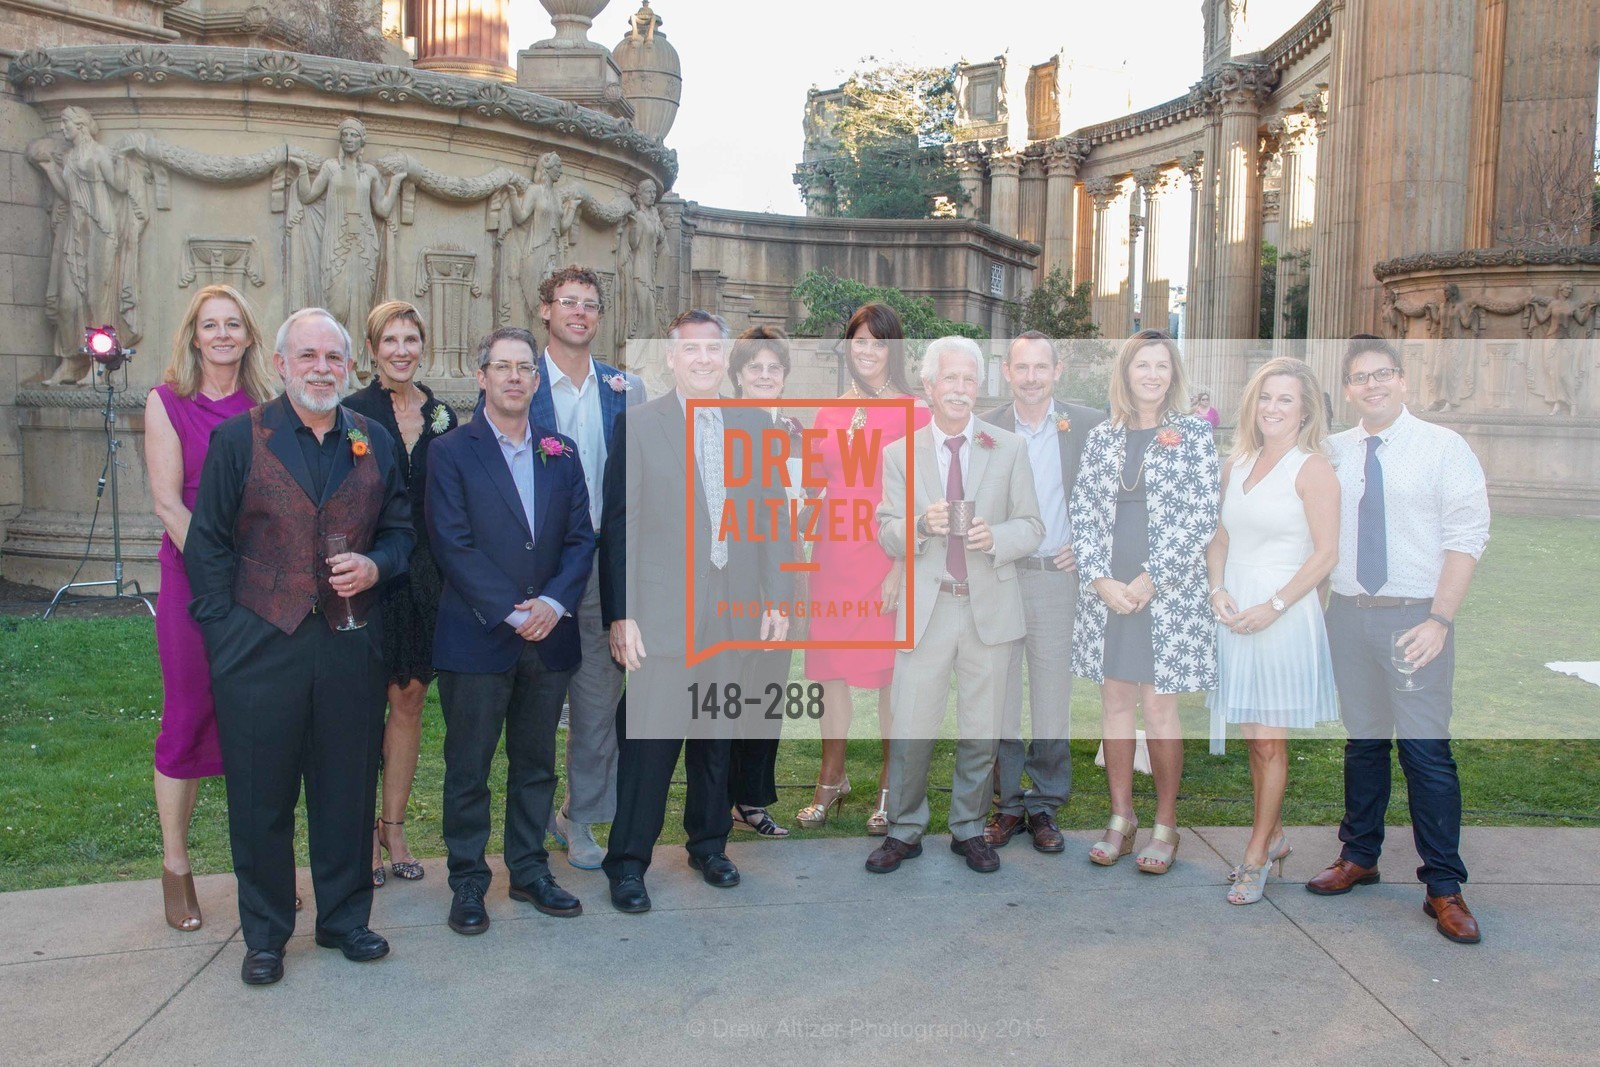 Tricia Sellman, Glenn Snyder, Rosemary Cameron, Ken Weber, Marcel Wilson, Kelly Nice, Christine Gardner, Phil Arnold, Chris Guillard, Nancy Conner, Carolyn Edwards, Party for the Parks 2015, Palace of Fine Arts. 3301 Lyon St, September 19th, 2015,Drew Altizer, Drew Altizer Photography, full-service agency, private events, San Francisco photographer, photographer california